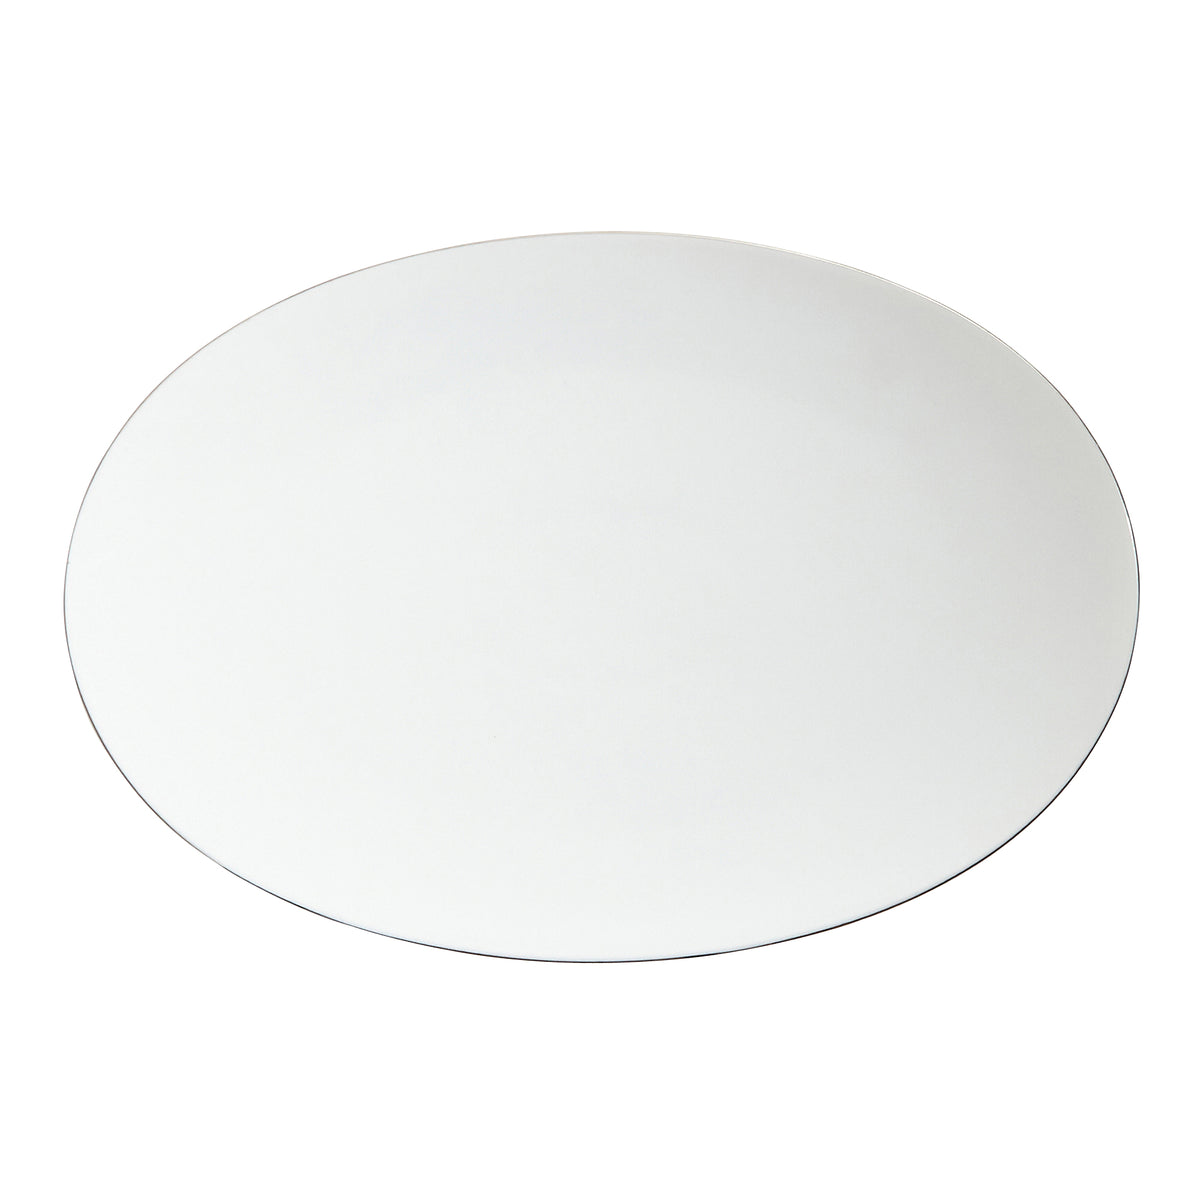 Platinum Filet Porcelain Platter Plate